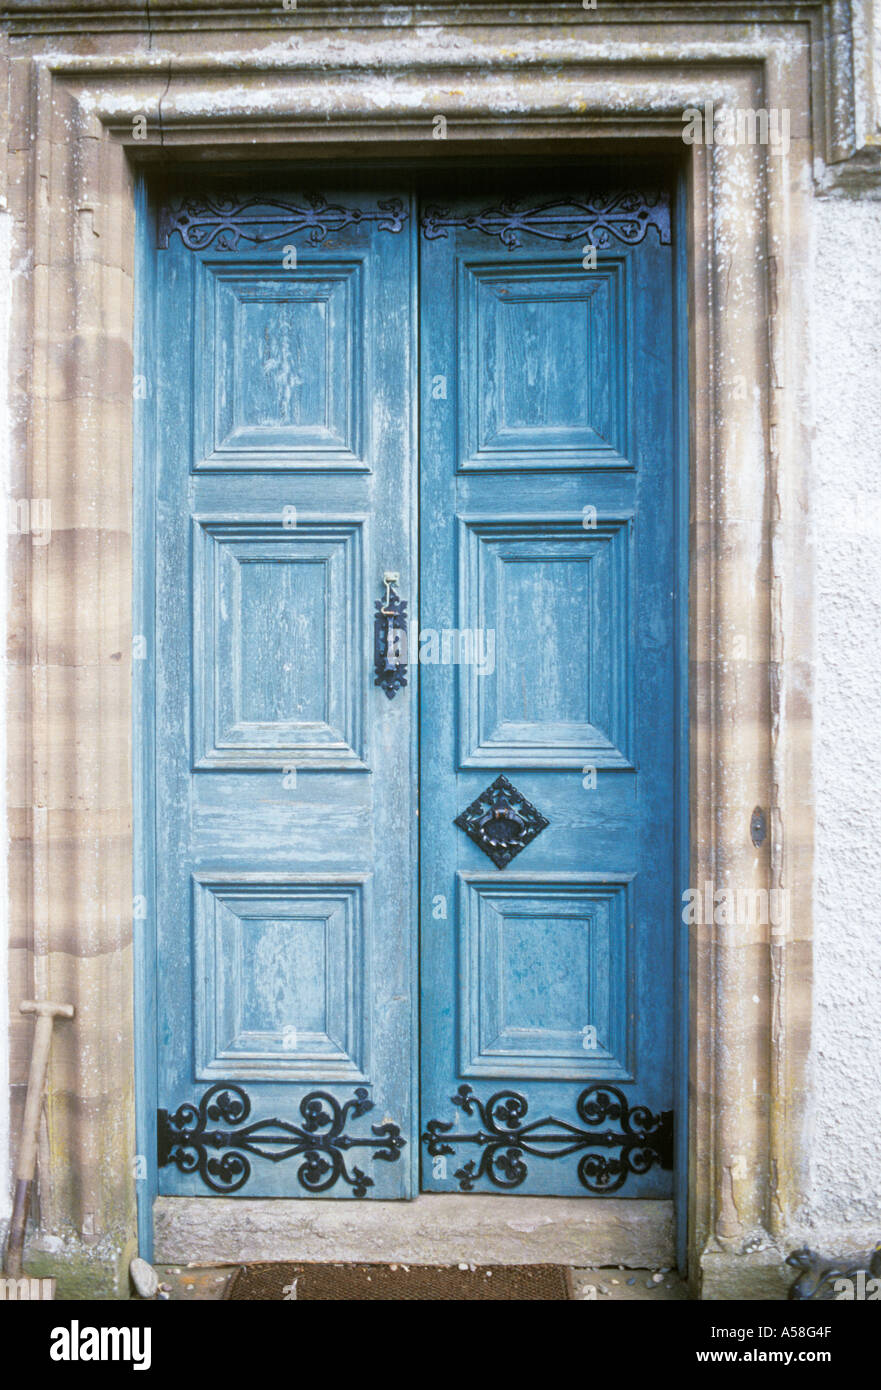 Banff Perthshire Scotland early 19th century blue front door c 1830 & Banff Perthshire Scotland early 19th century blue front door c 1830 ...